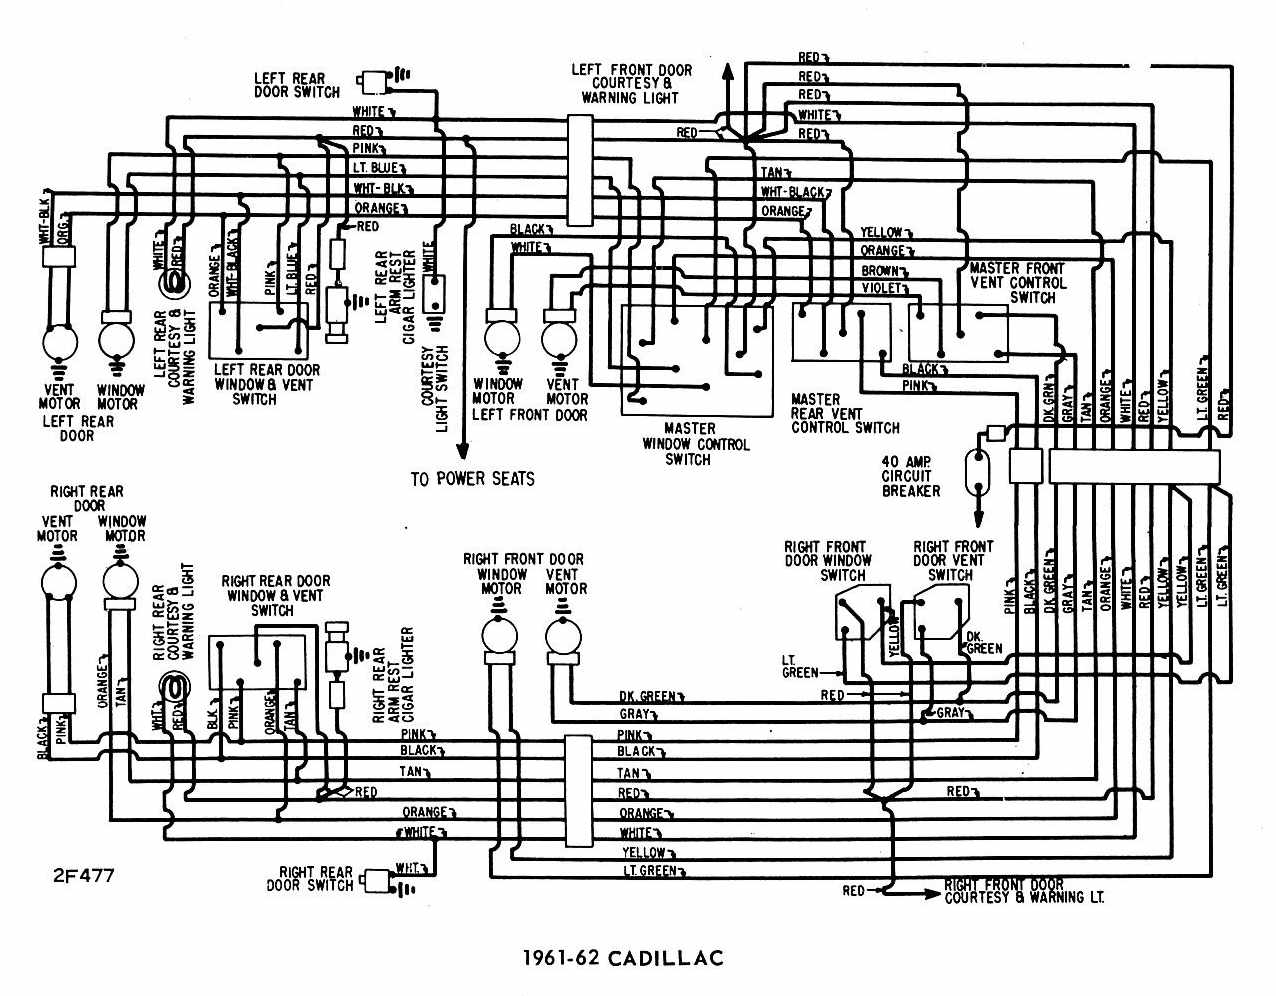 [NRIO_4796]   CADILLAC - Car PDF Manual, Wiring Diagram & Fault Codes DTC | Cadillac Electrical Wiring Diagrams |  | automotive-manuals.net